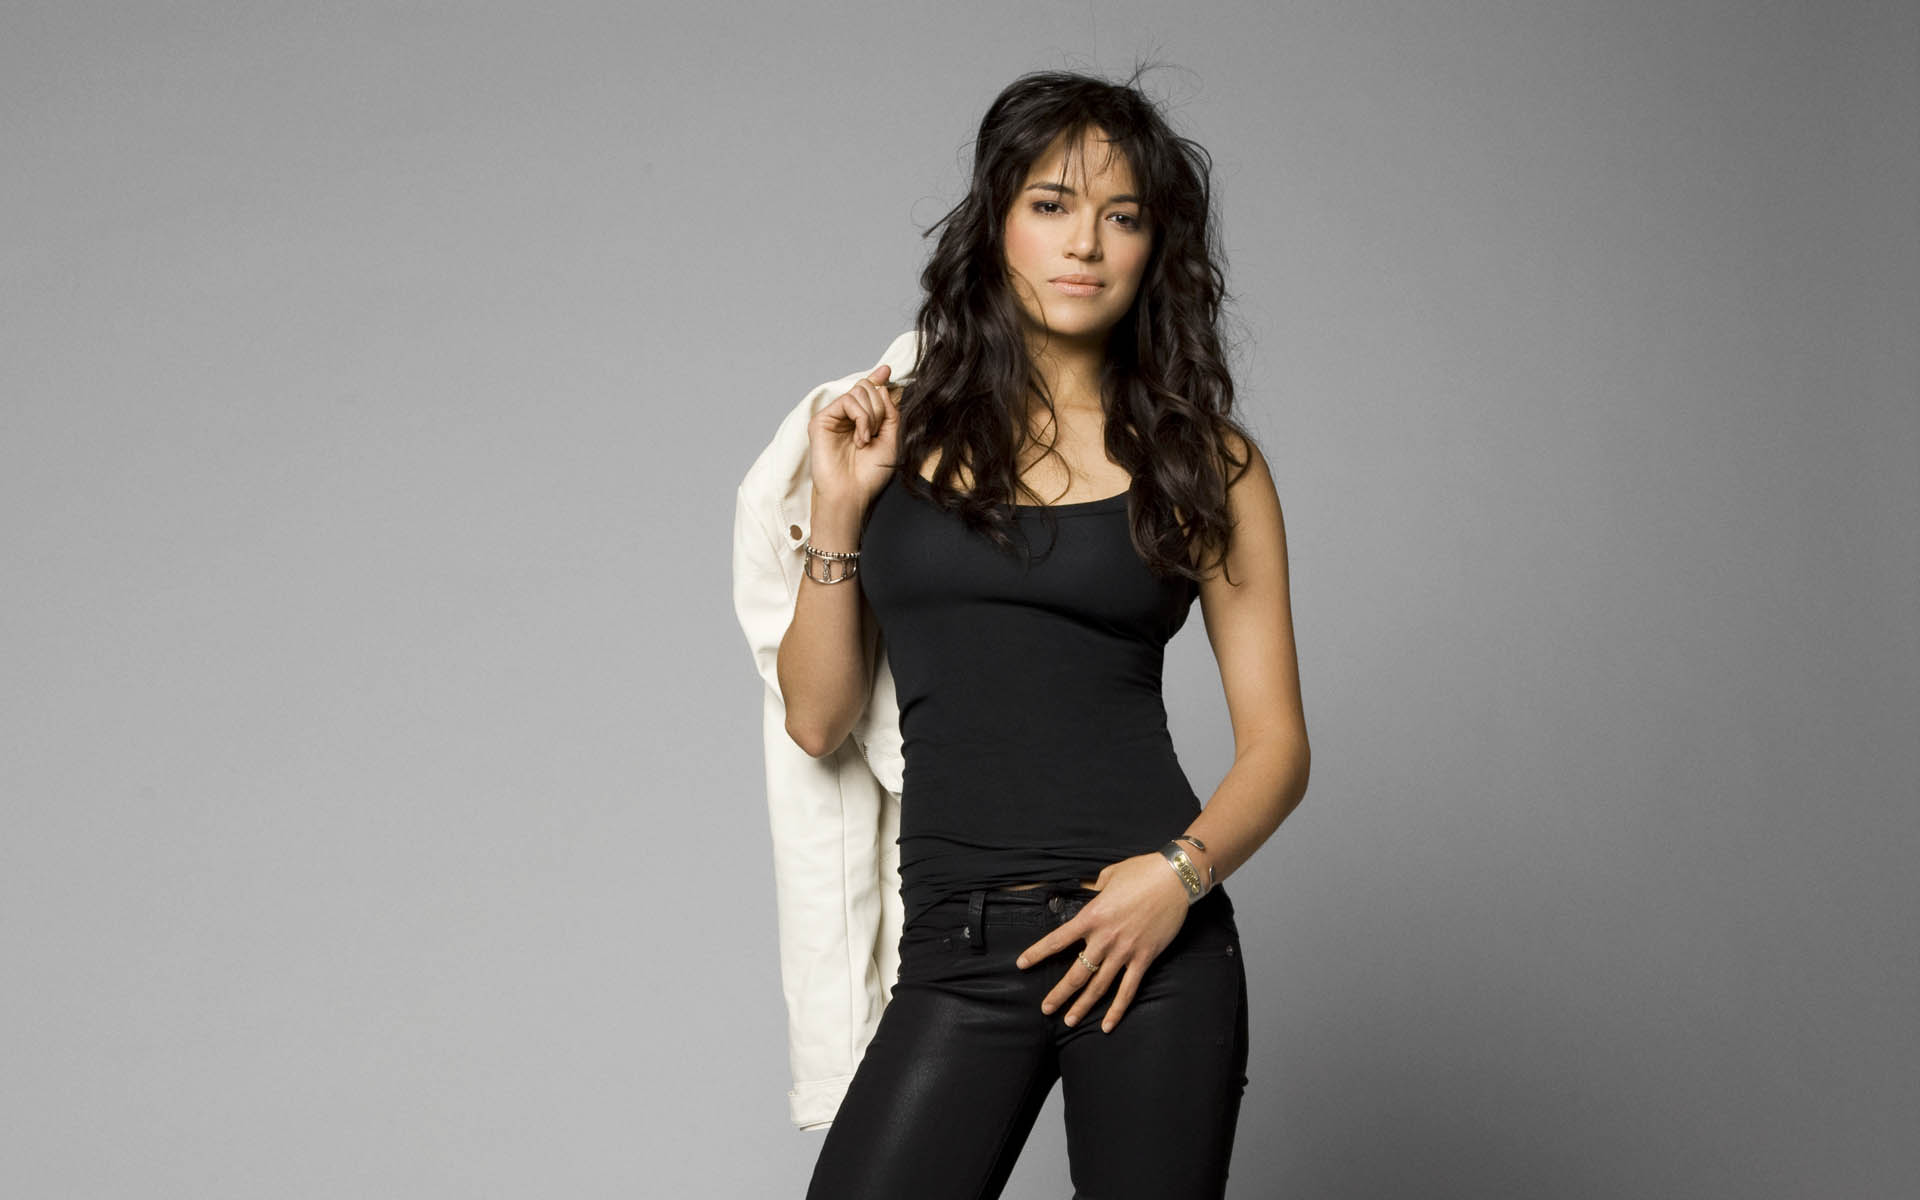 1920x1200 - Michelle Rodriguez Wallpapers 8